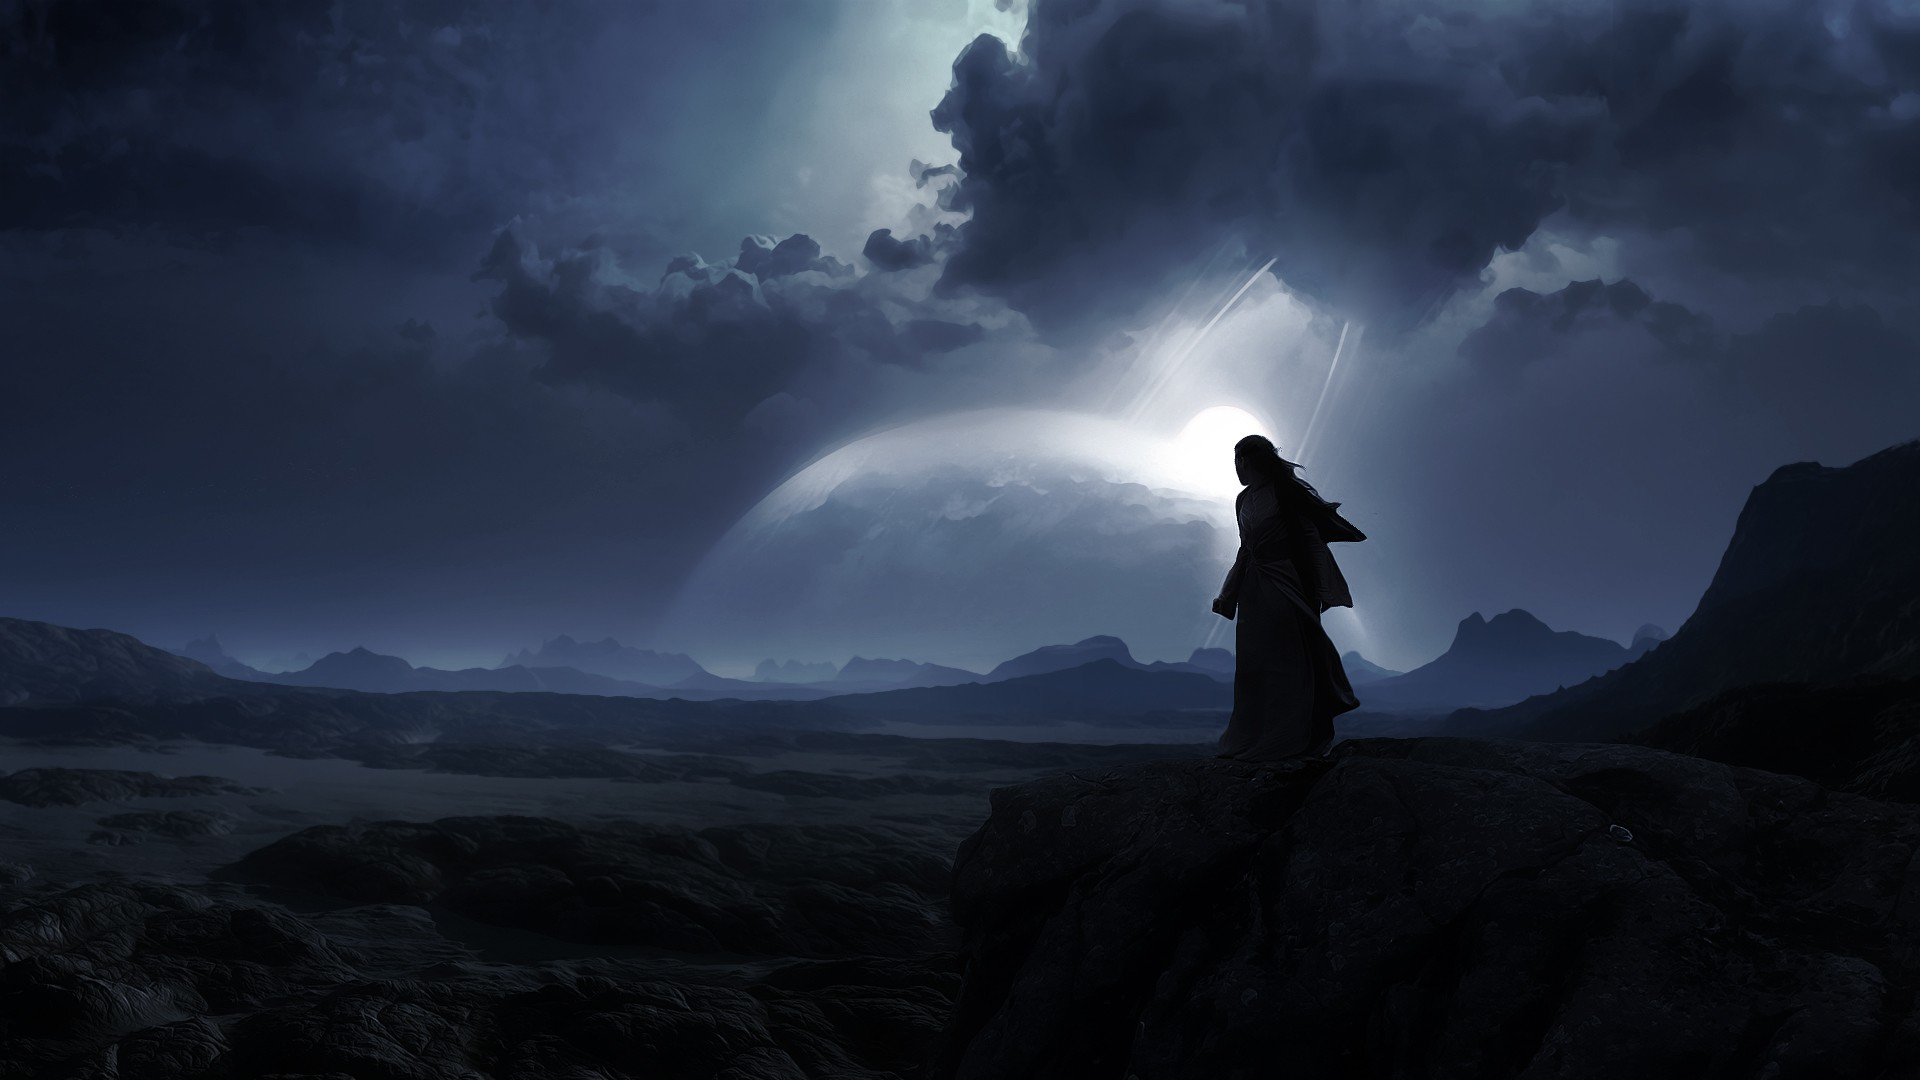 Abstract-Artwork-Clouds-Dark-Fantasy-Art-Landscapes-Lonely-Moon-Night-Robes-Warriors-wallpaper-wp3802136